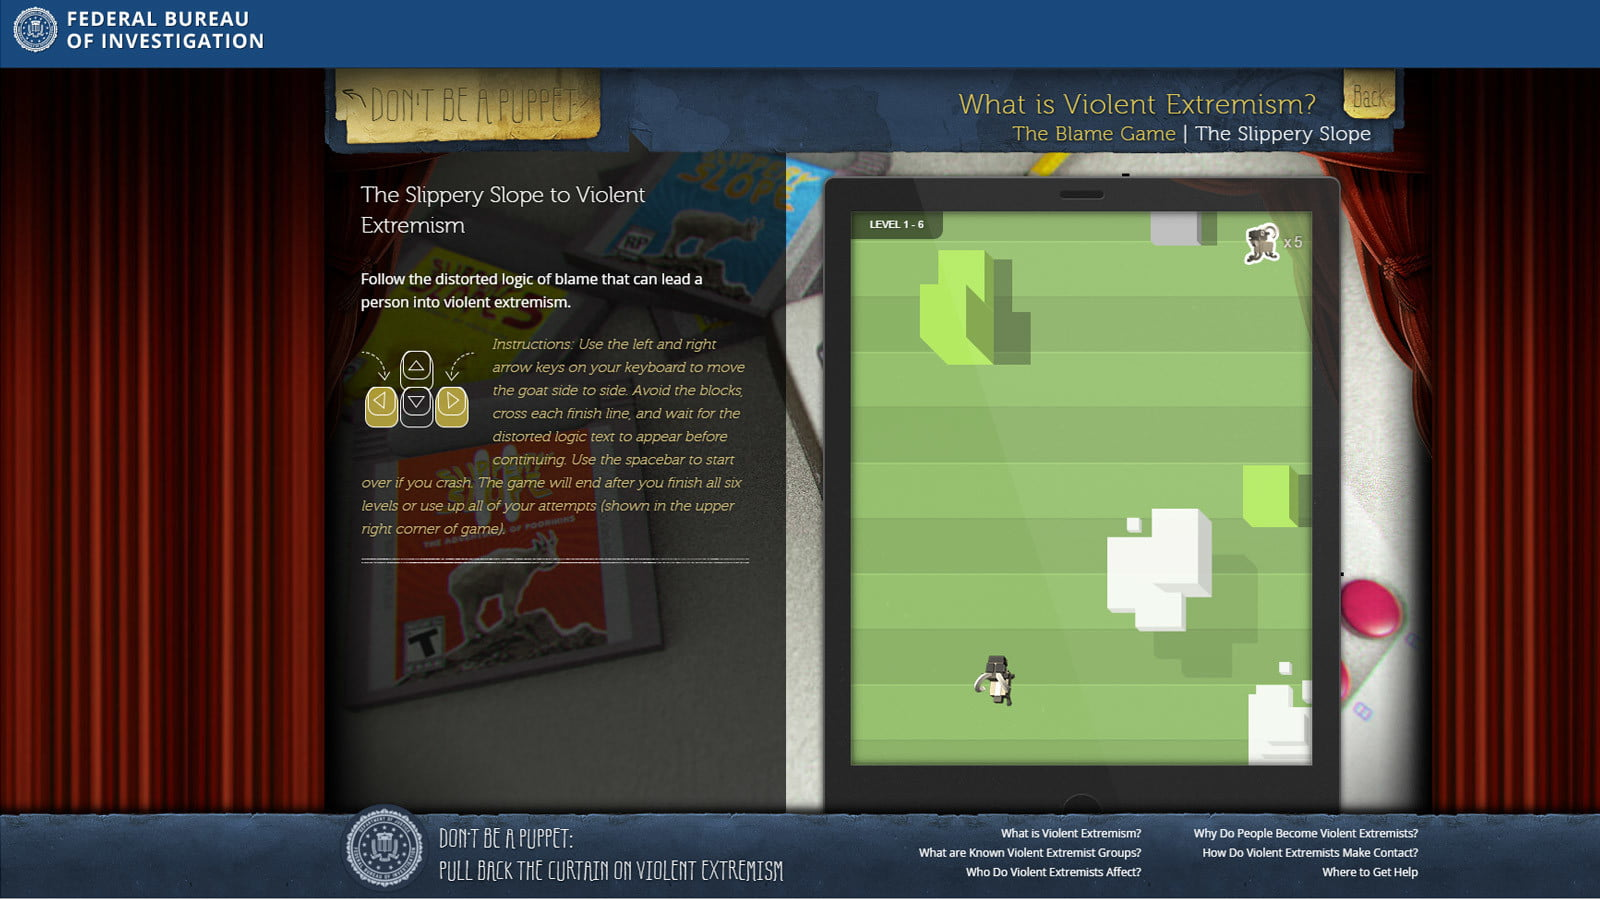 fbi anti extremism site targets teens but misses the mark fbisite05